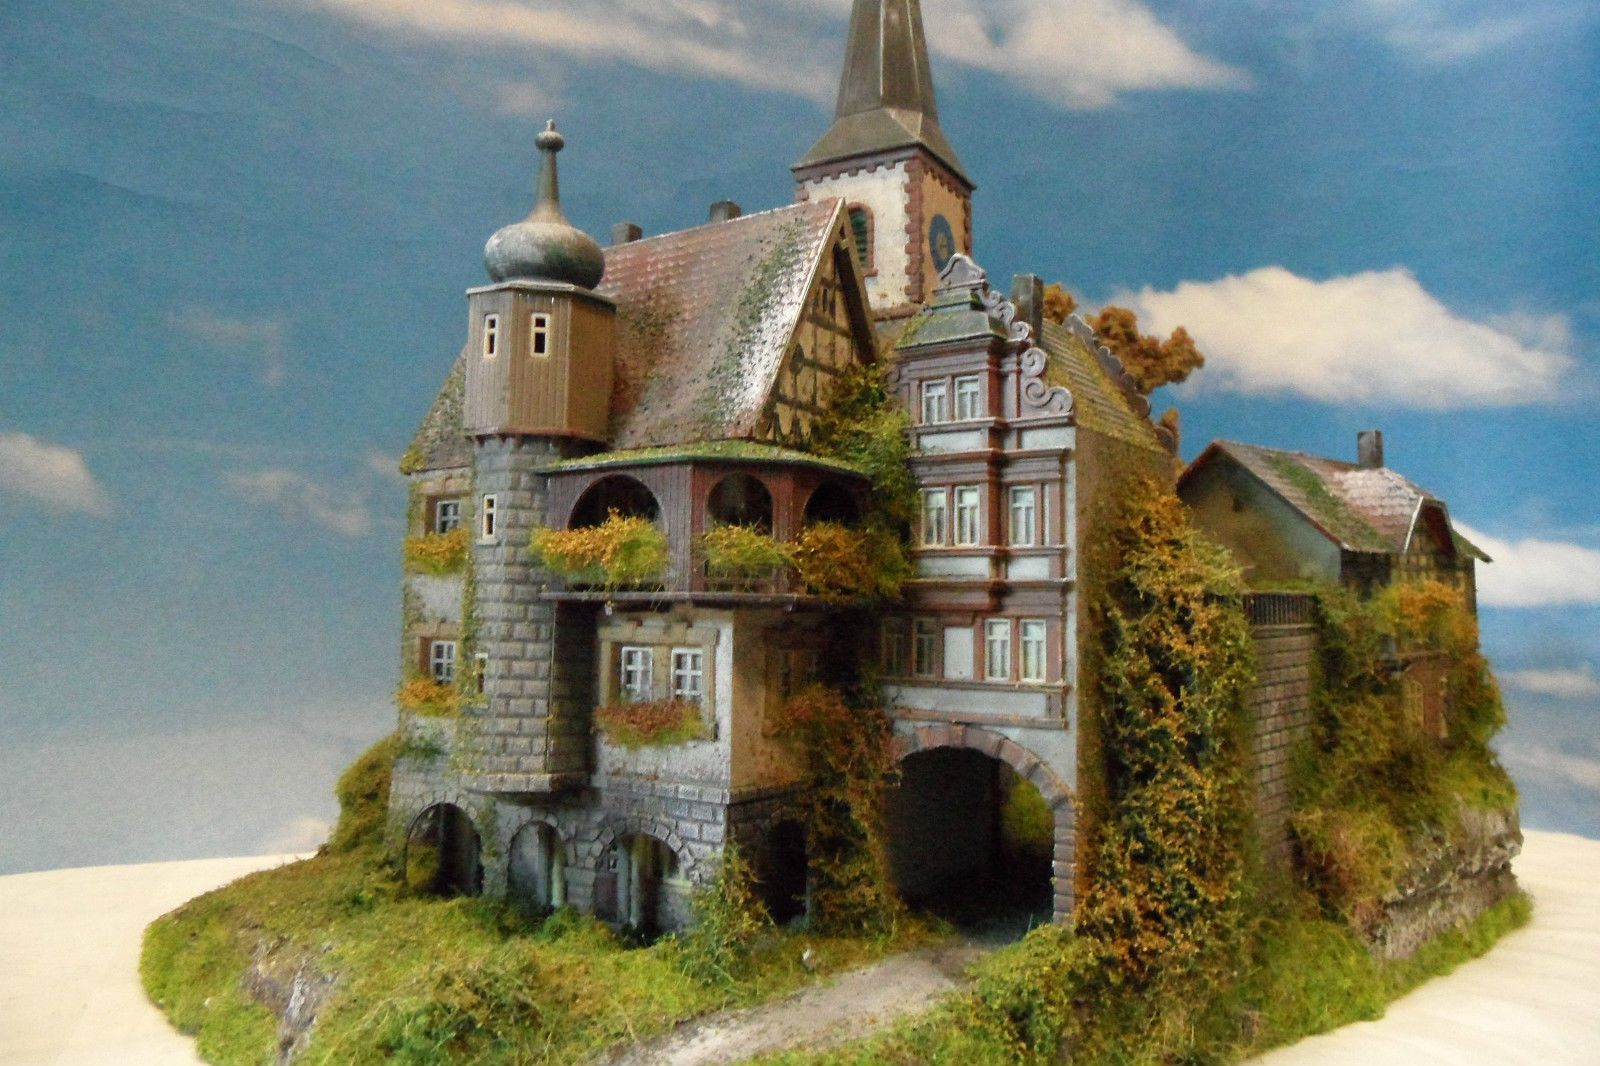 dioramenstudio potsdam burg diorama burg lahnstein ho modell ebay model railways pinterest. Black Bedroom Furniture Sets. Home Design Ideas